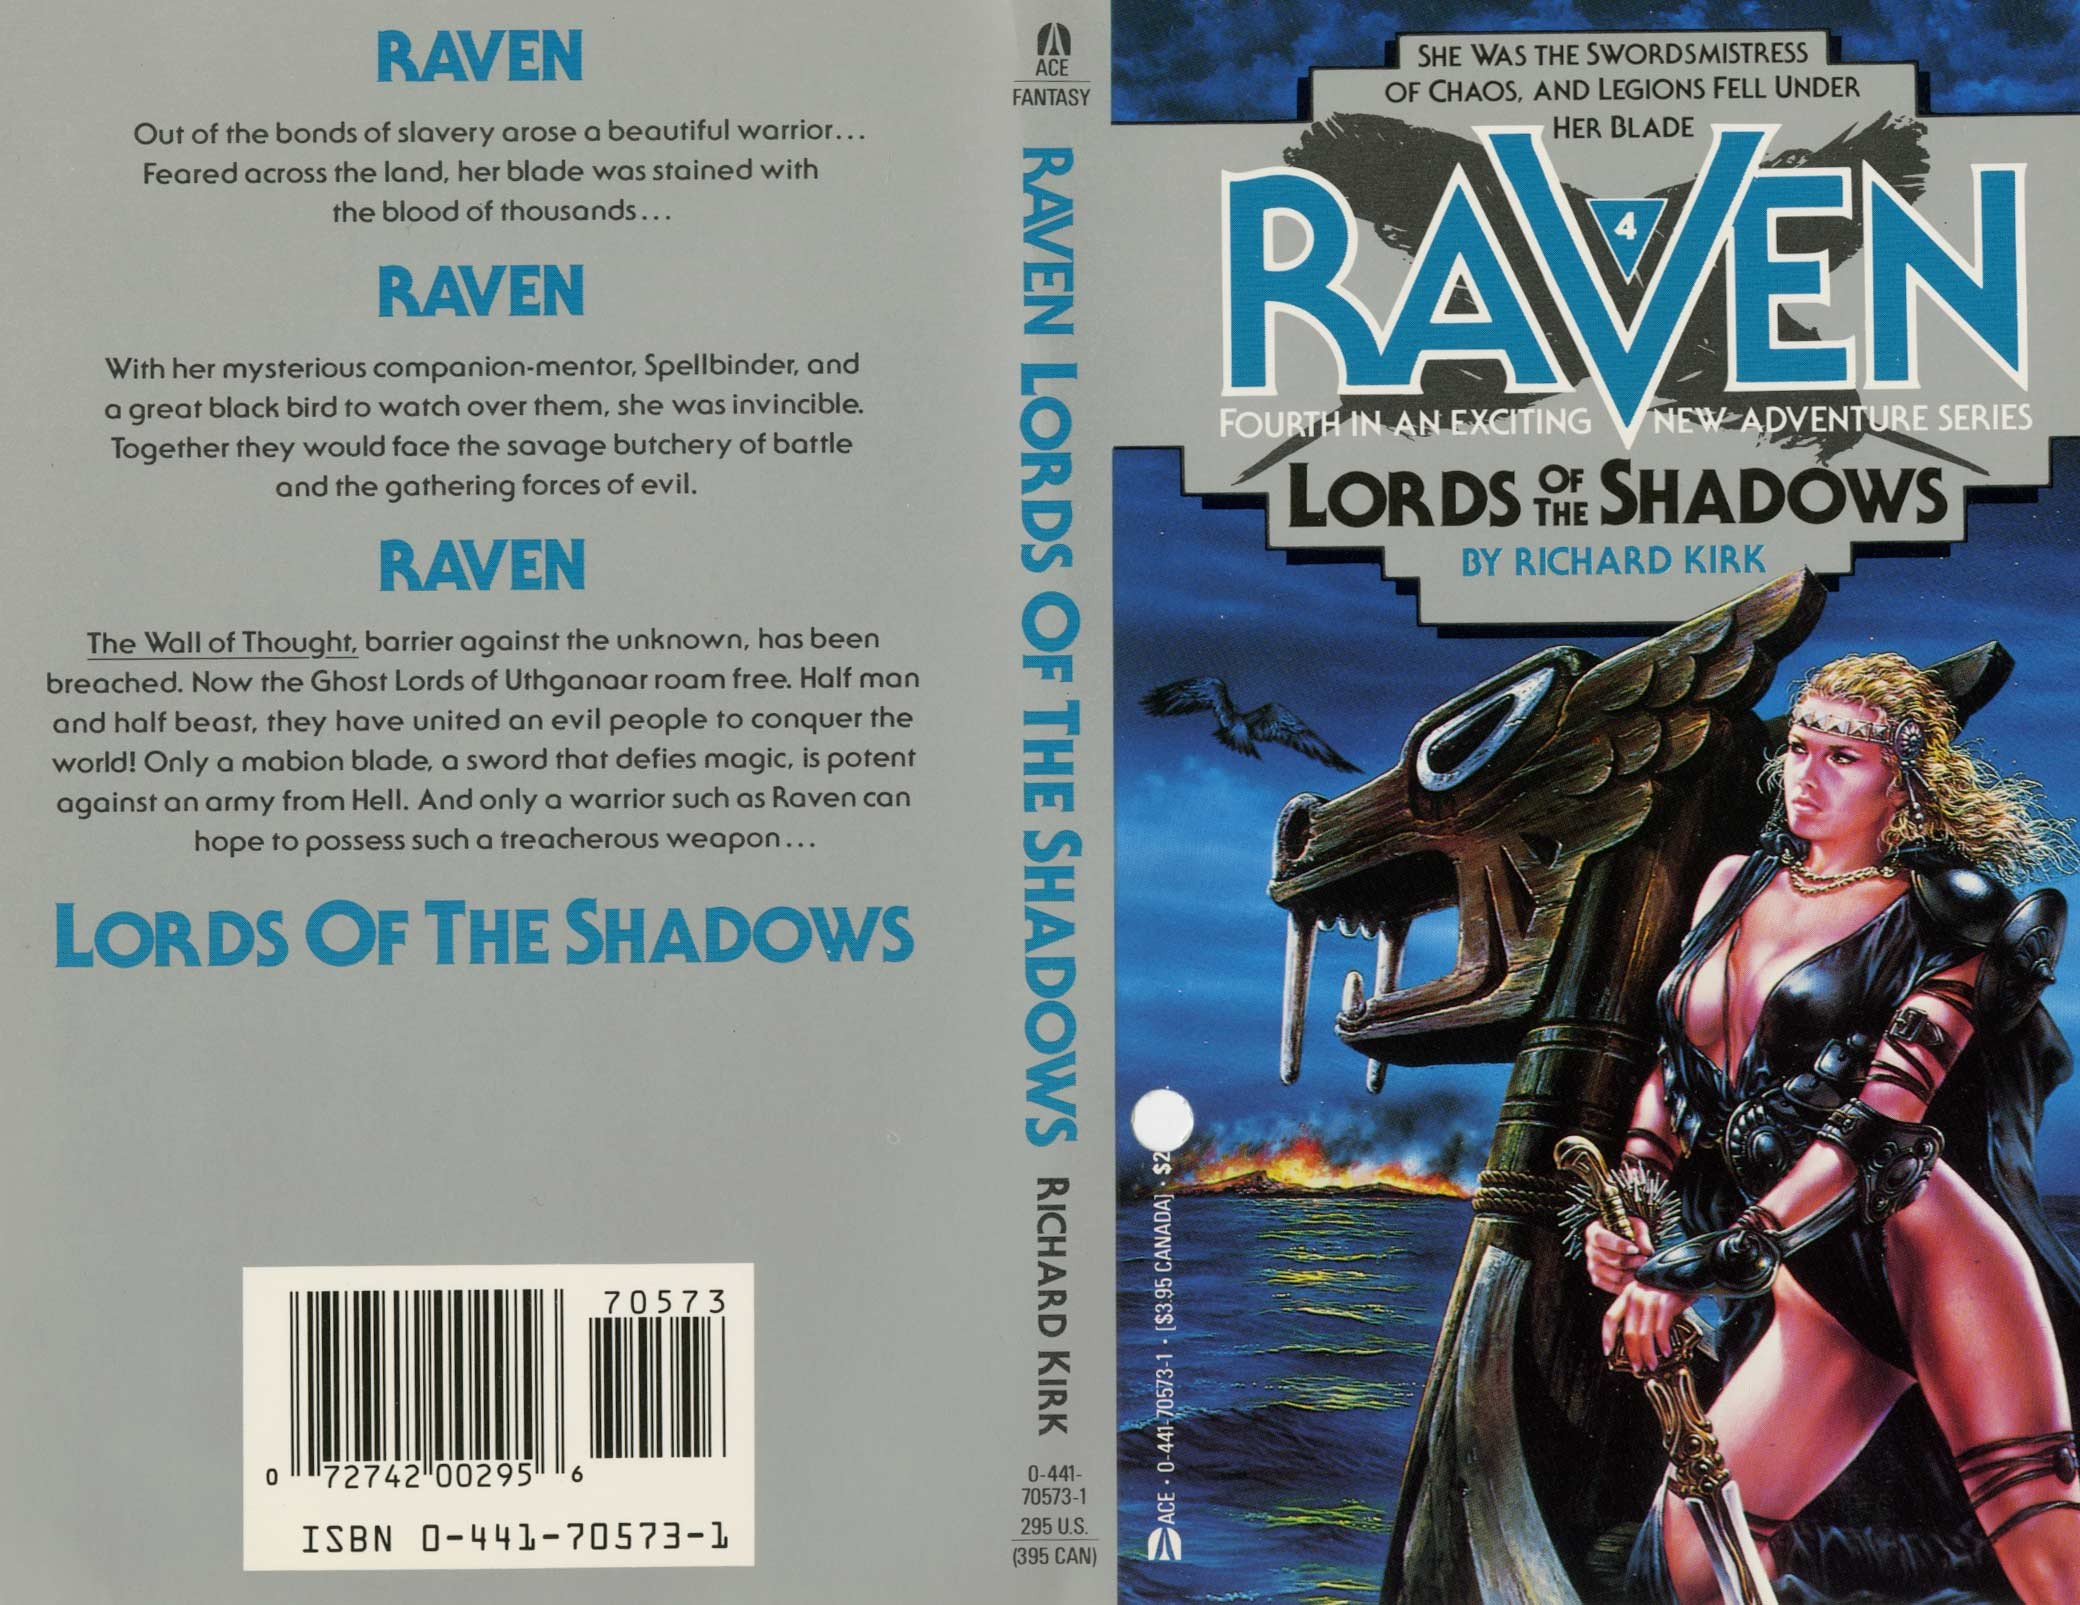 RAVEN IV COVER